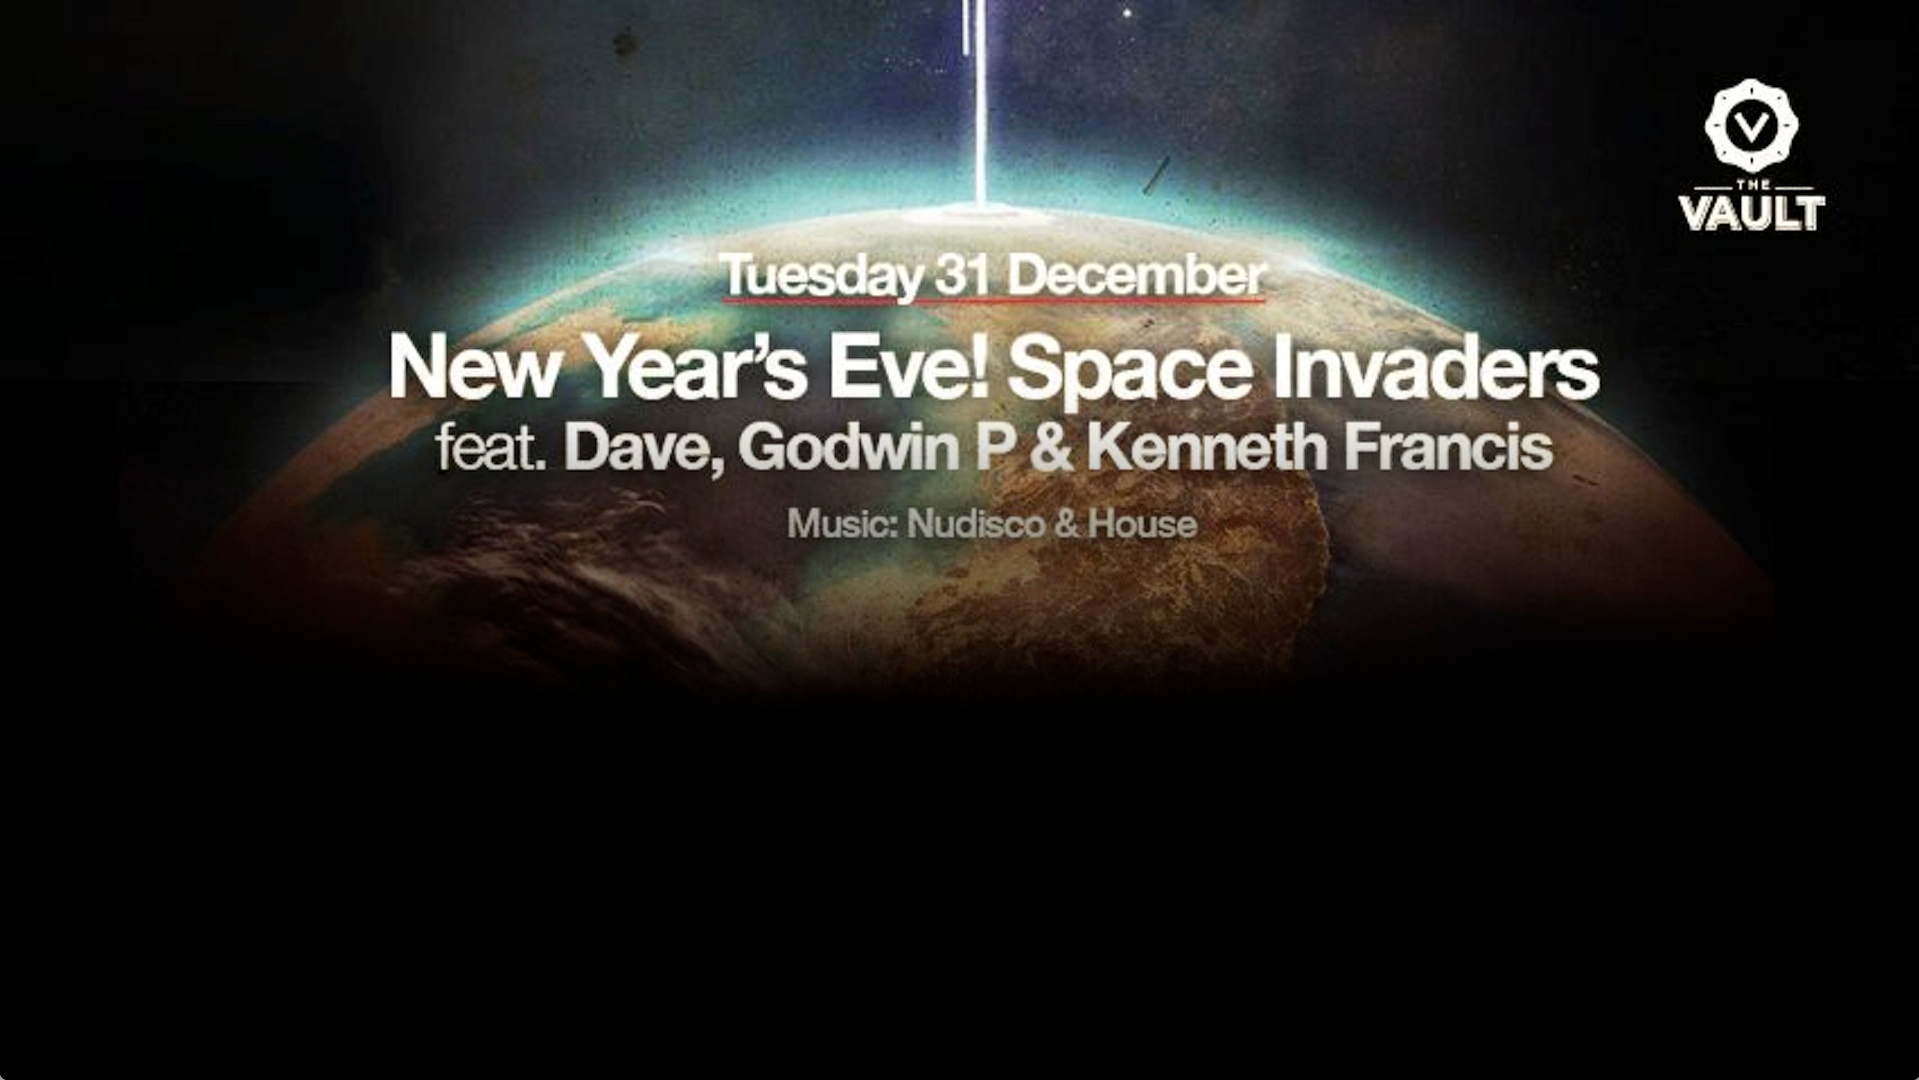 New Year's Eve! Space Invaders